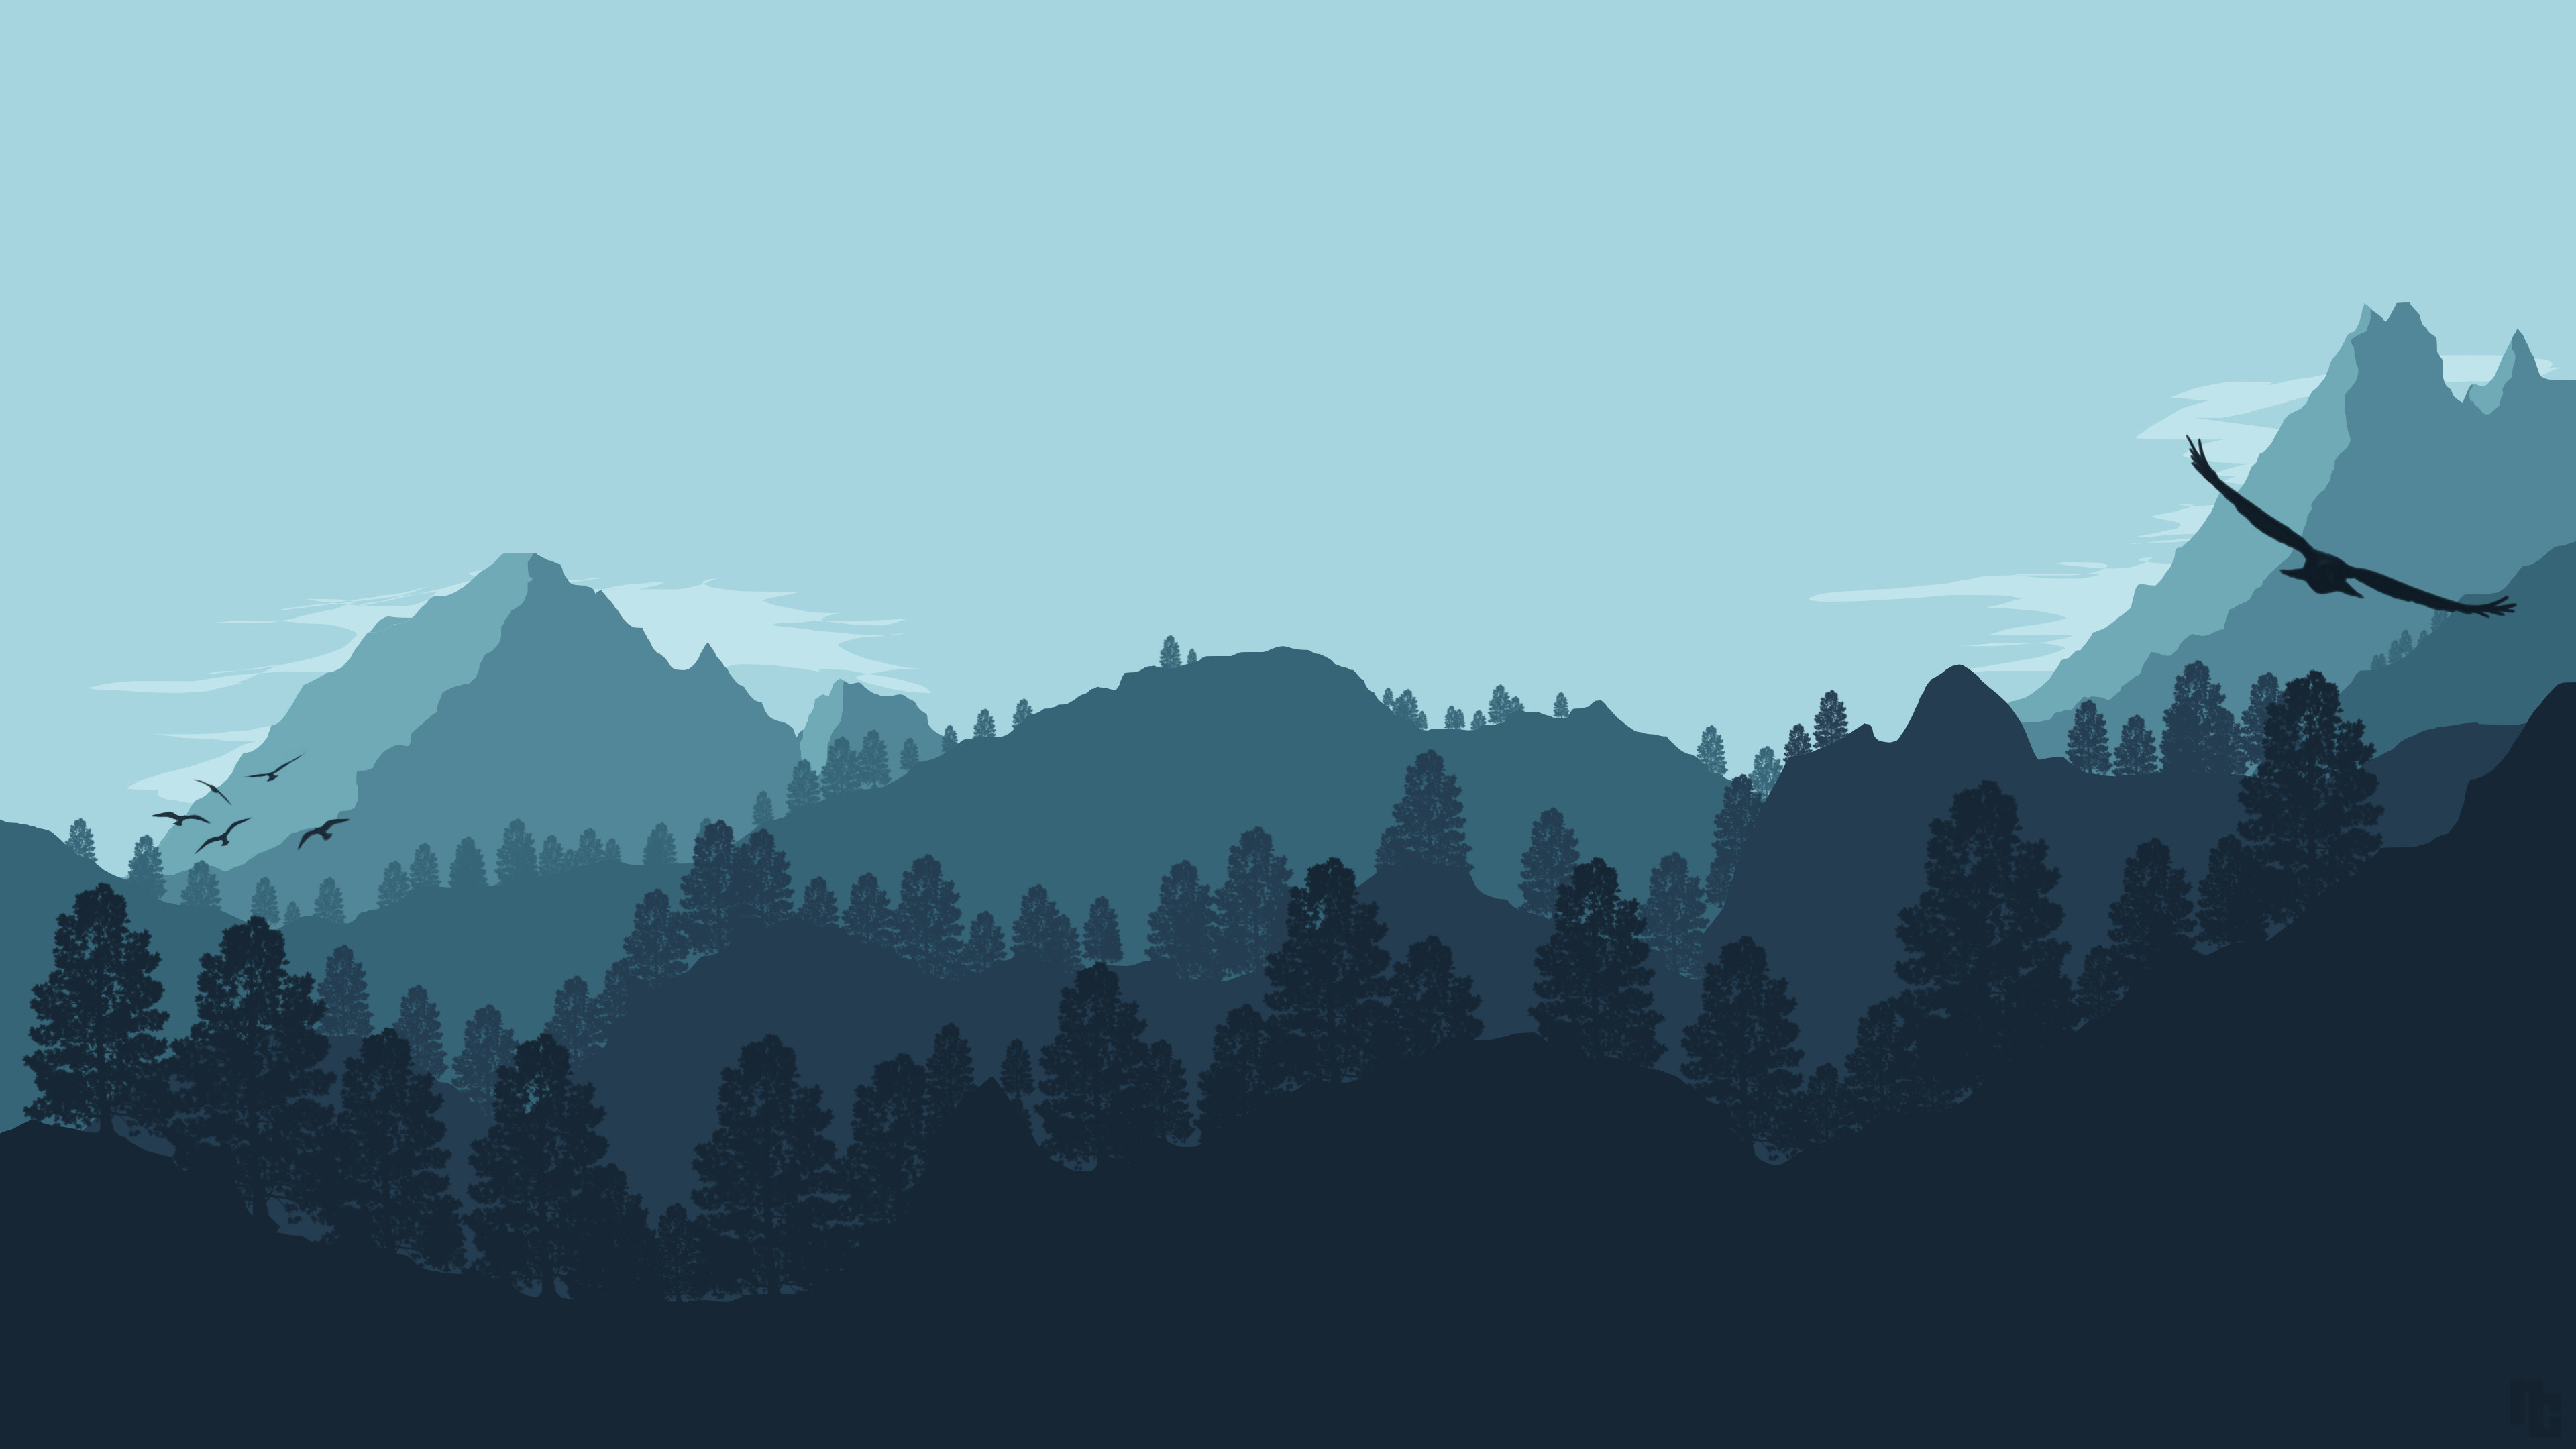 Minimalist Wallpapers Reddit Posted By Ethan Cunningham